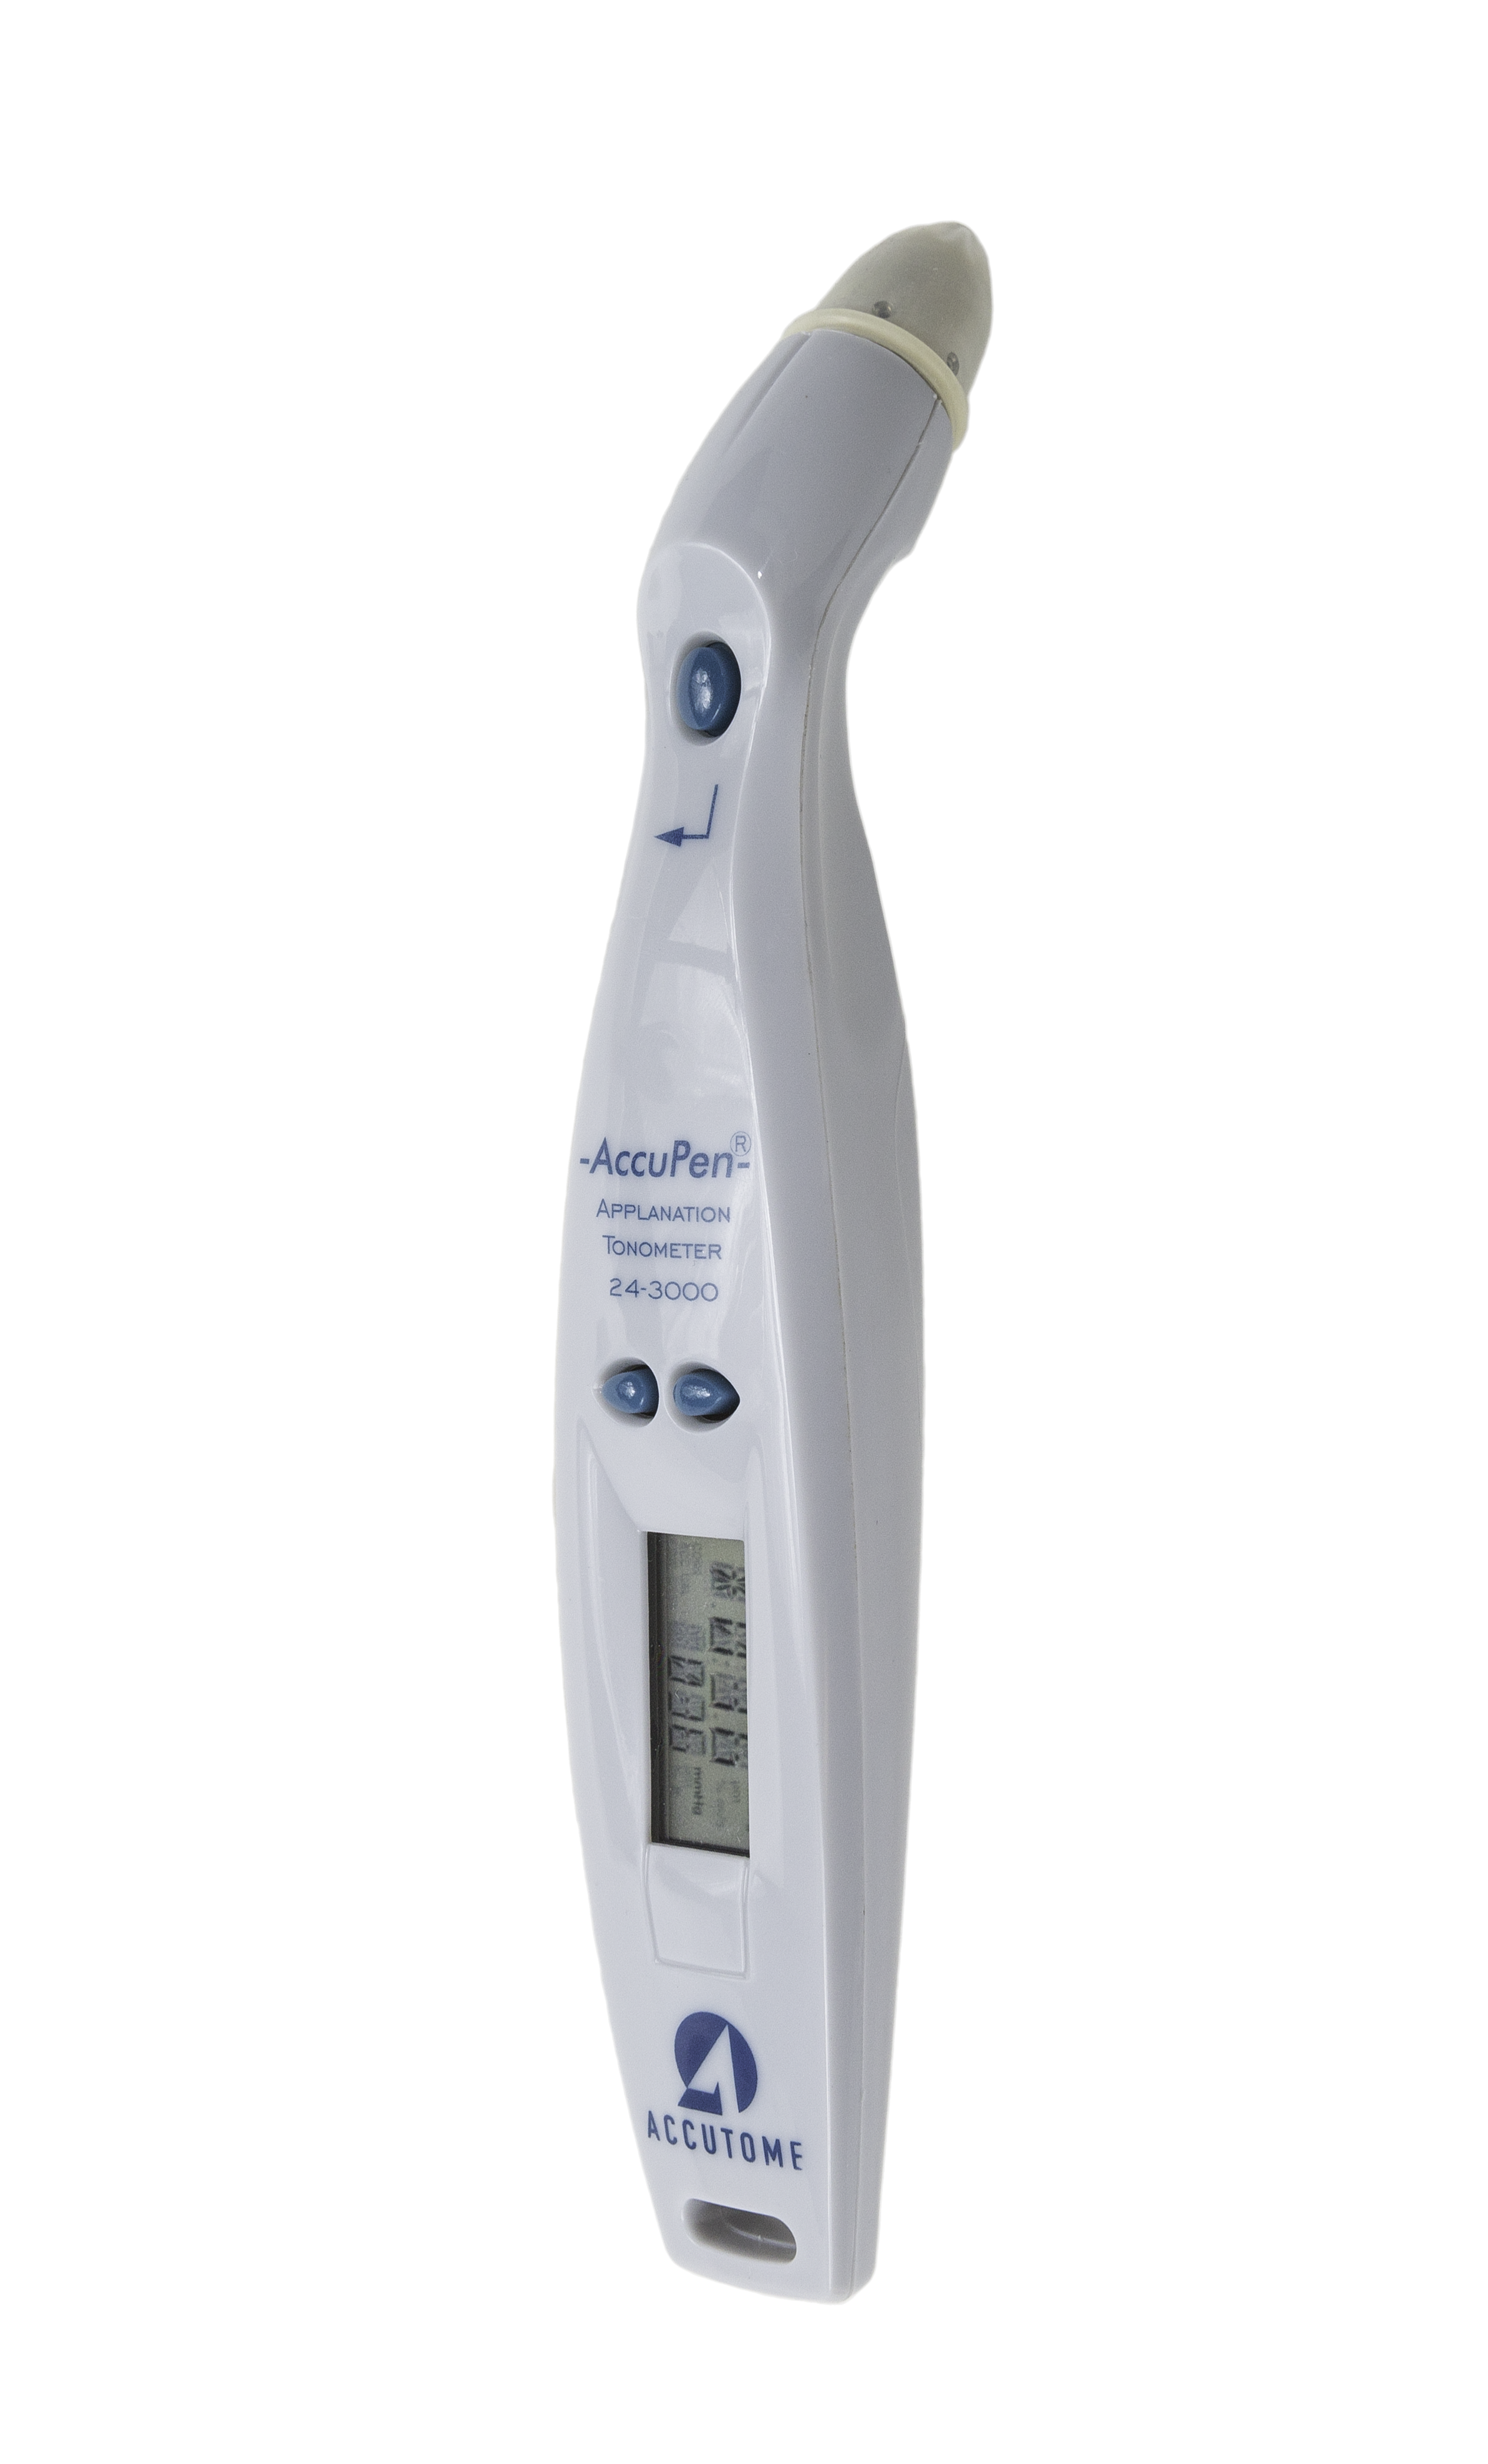 Hand-Held Applanation Tonometer (AccuPen)